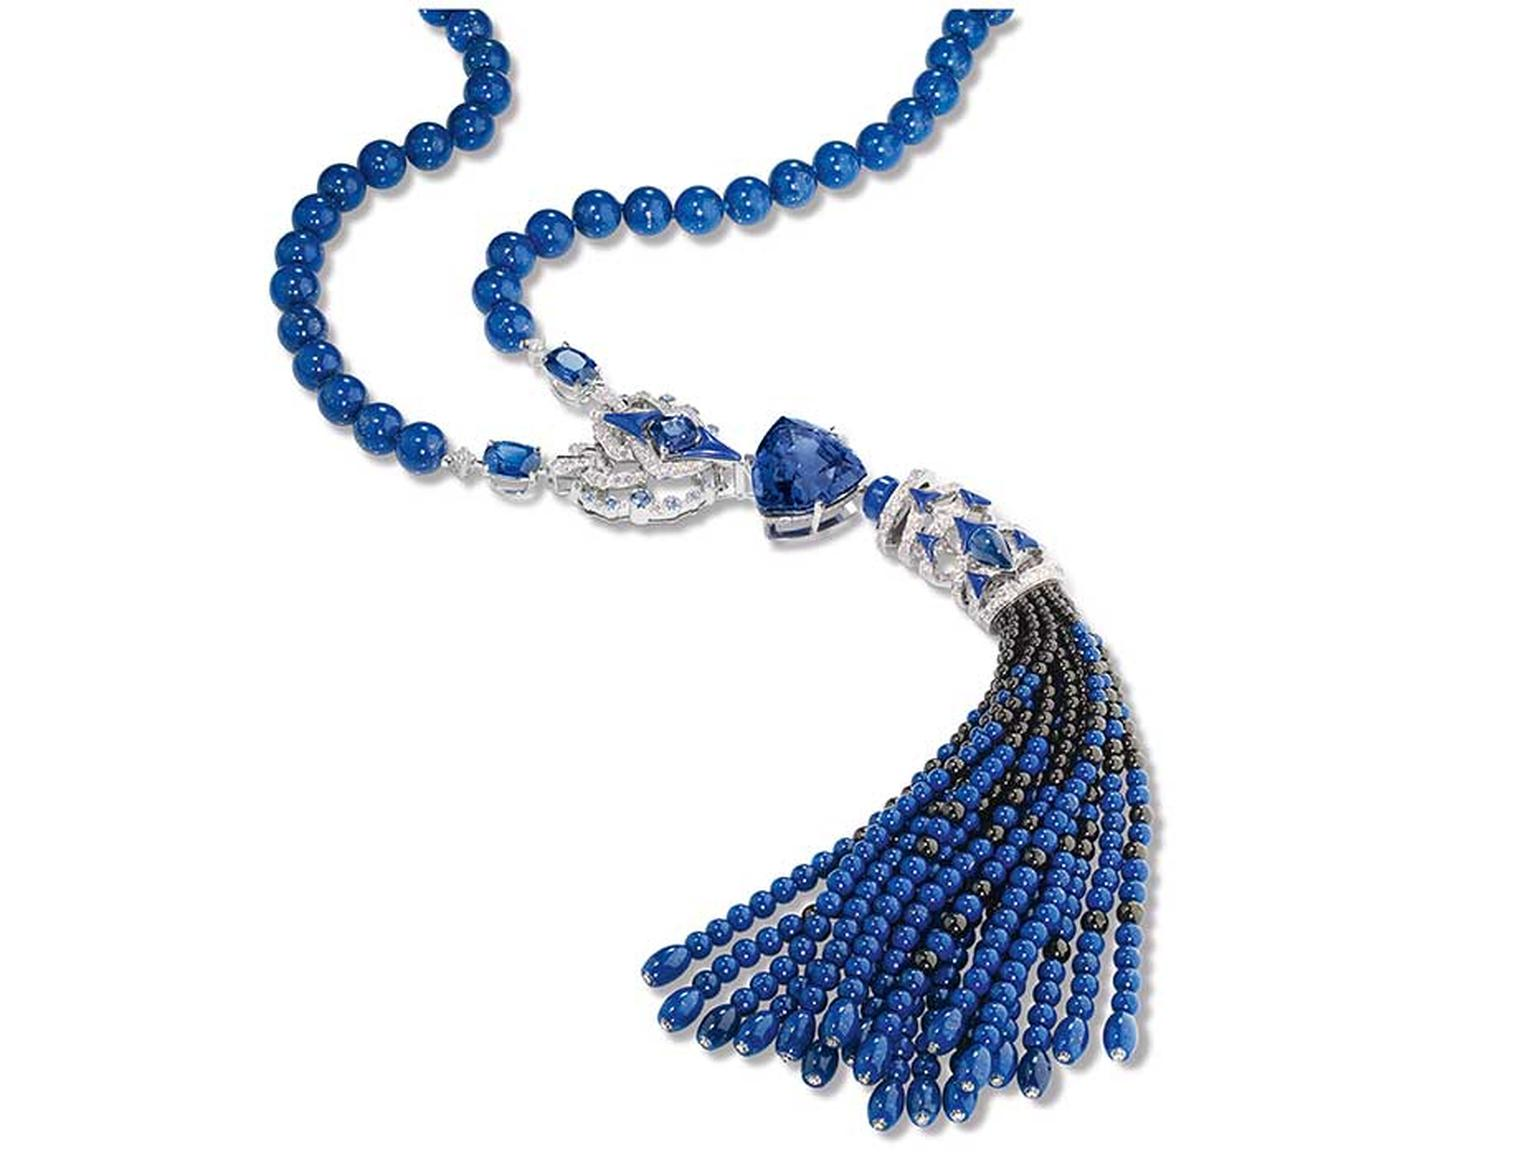 Chaumet Lumieres d'Eau high jewellery necklace in white gold with a 45.64ct troidia-cut tanzanite, three cushion-cut sapphires, sapphires, sapphire beads, lapis lazuli beads and black spinel beads.